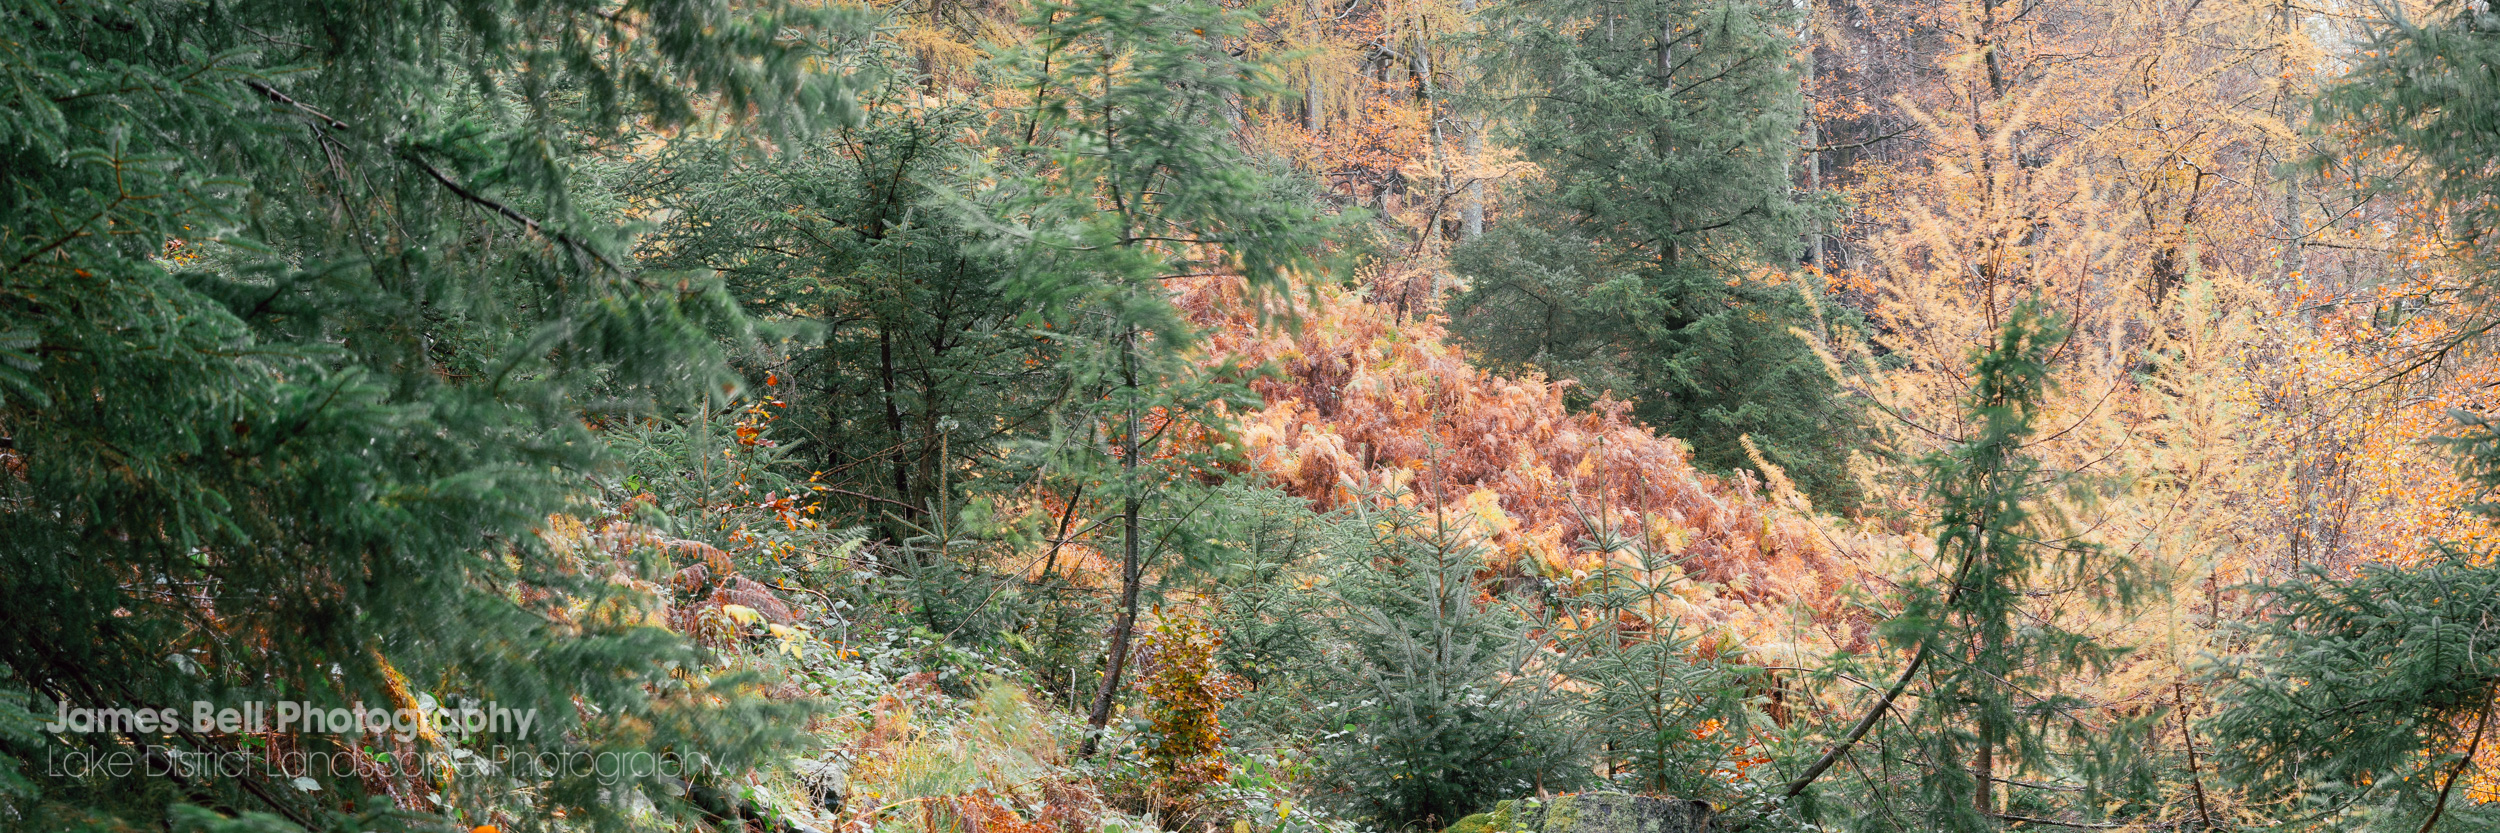 Autumn at Thirlmere in the Lake District